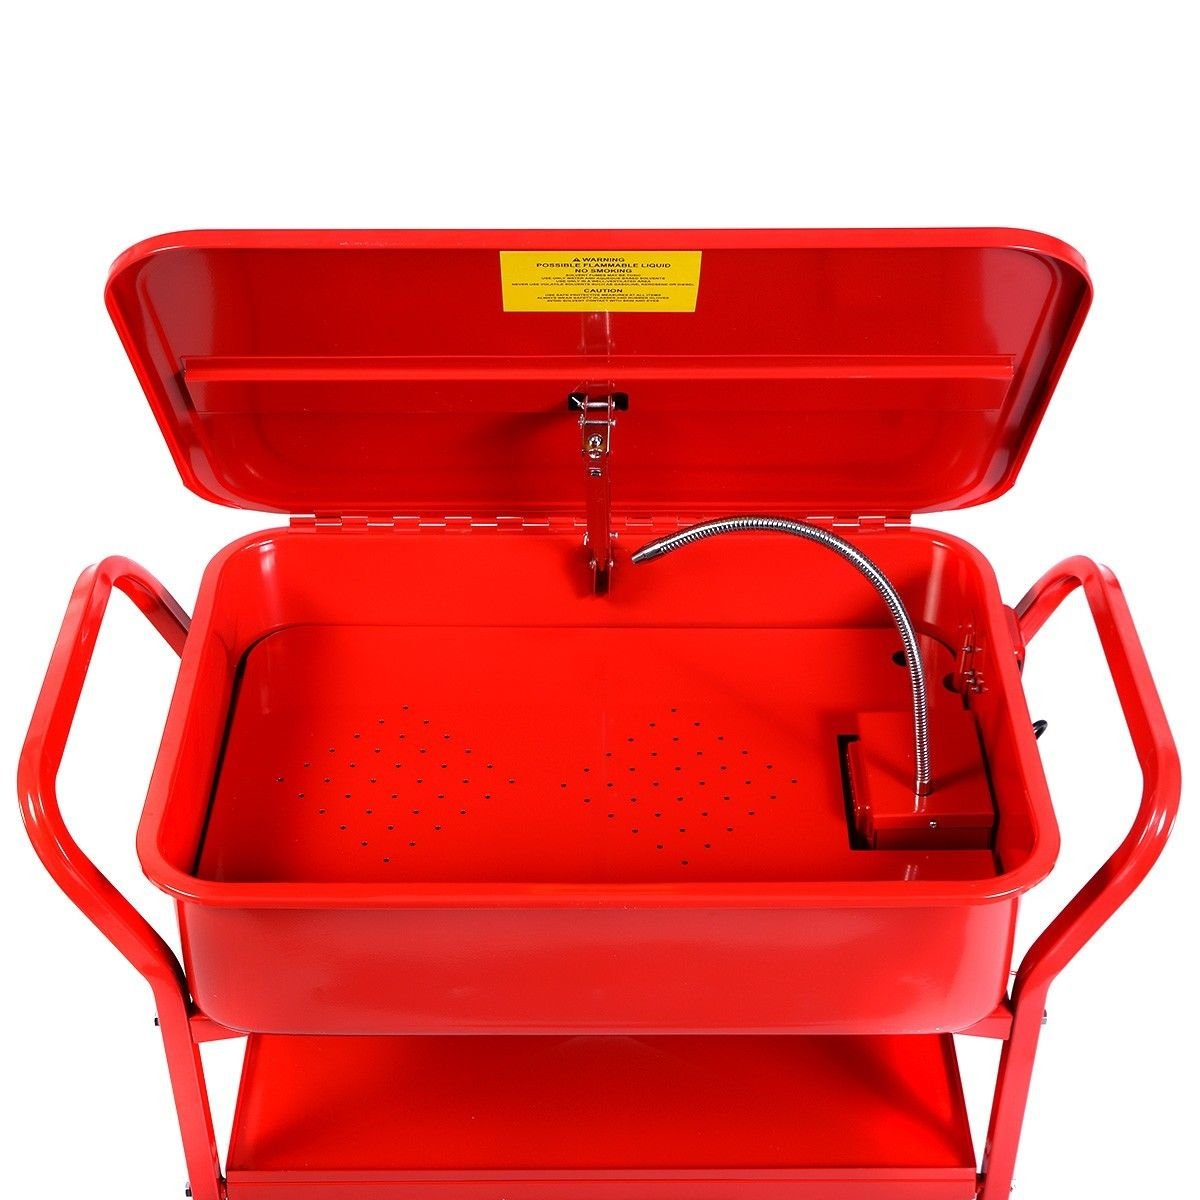 Globe House Products GHP 20-Gallon Max Tank Cacpacity 5.28GPM Flow Rate Red Mobile Parts Washer Cart by Globe House Products (Image #2)